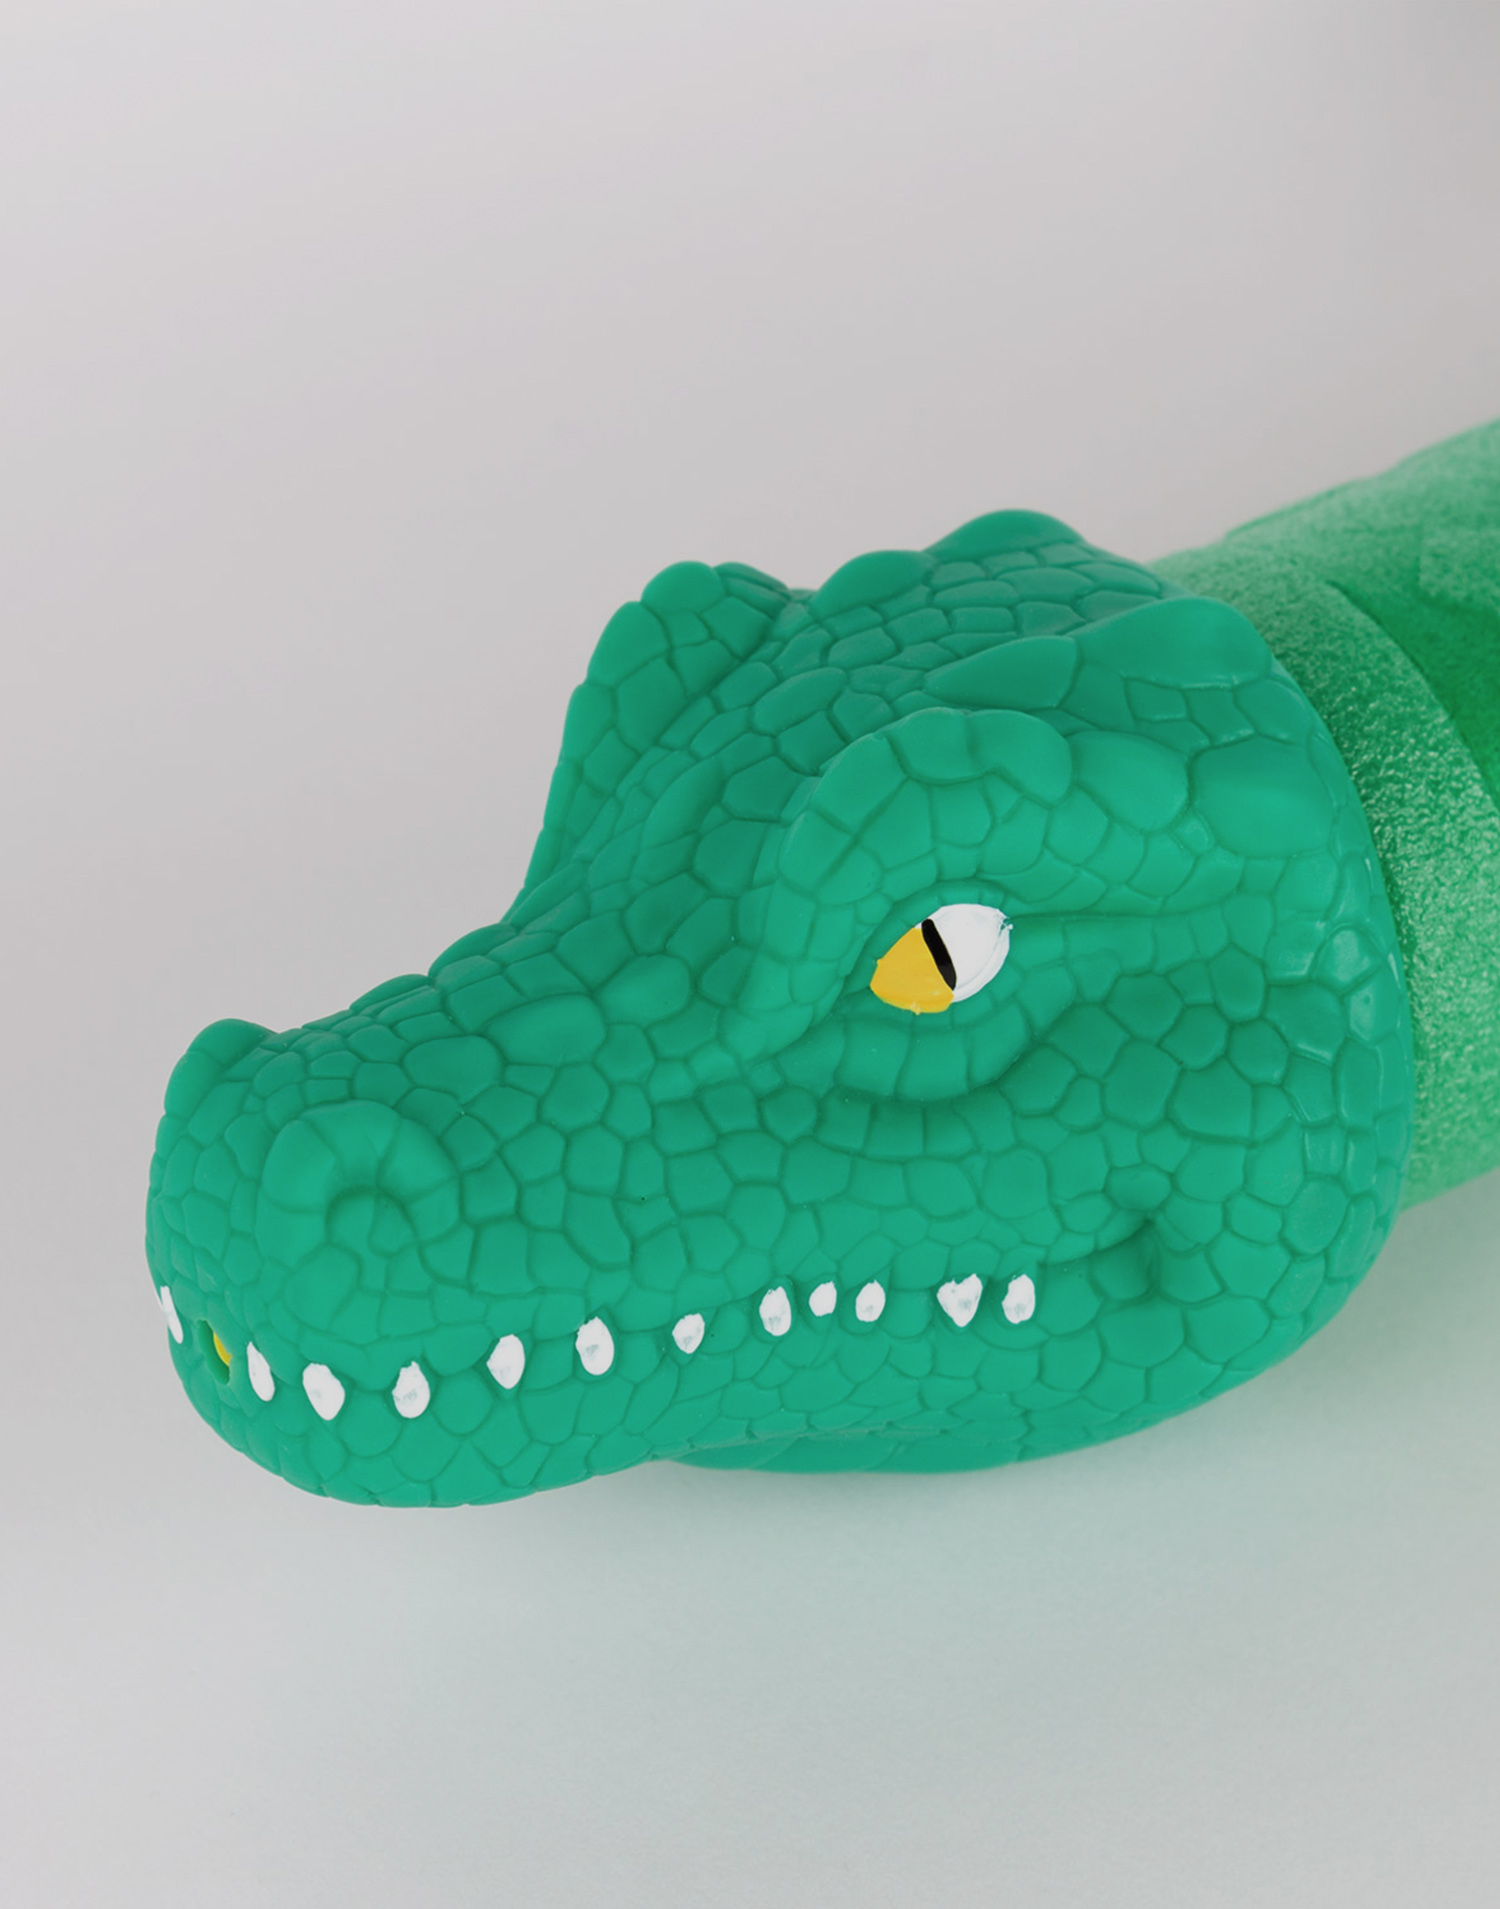 Cocodrile summer toy water gun